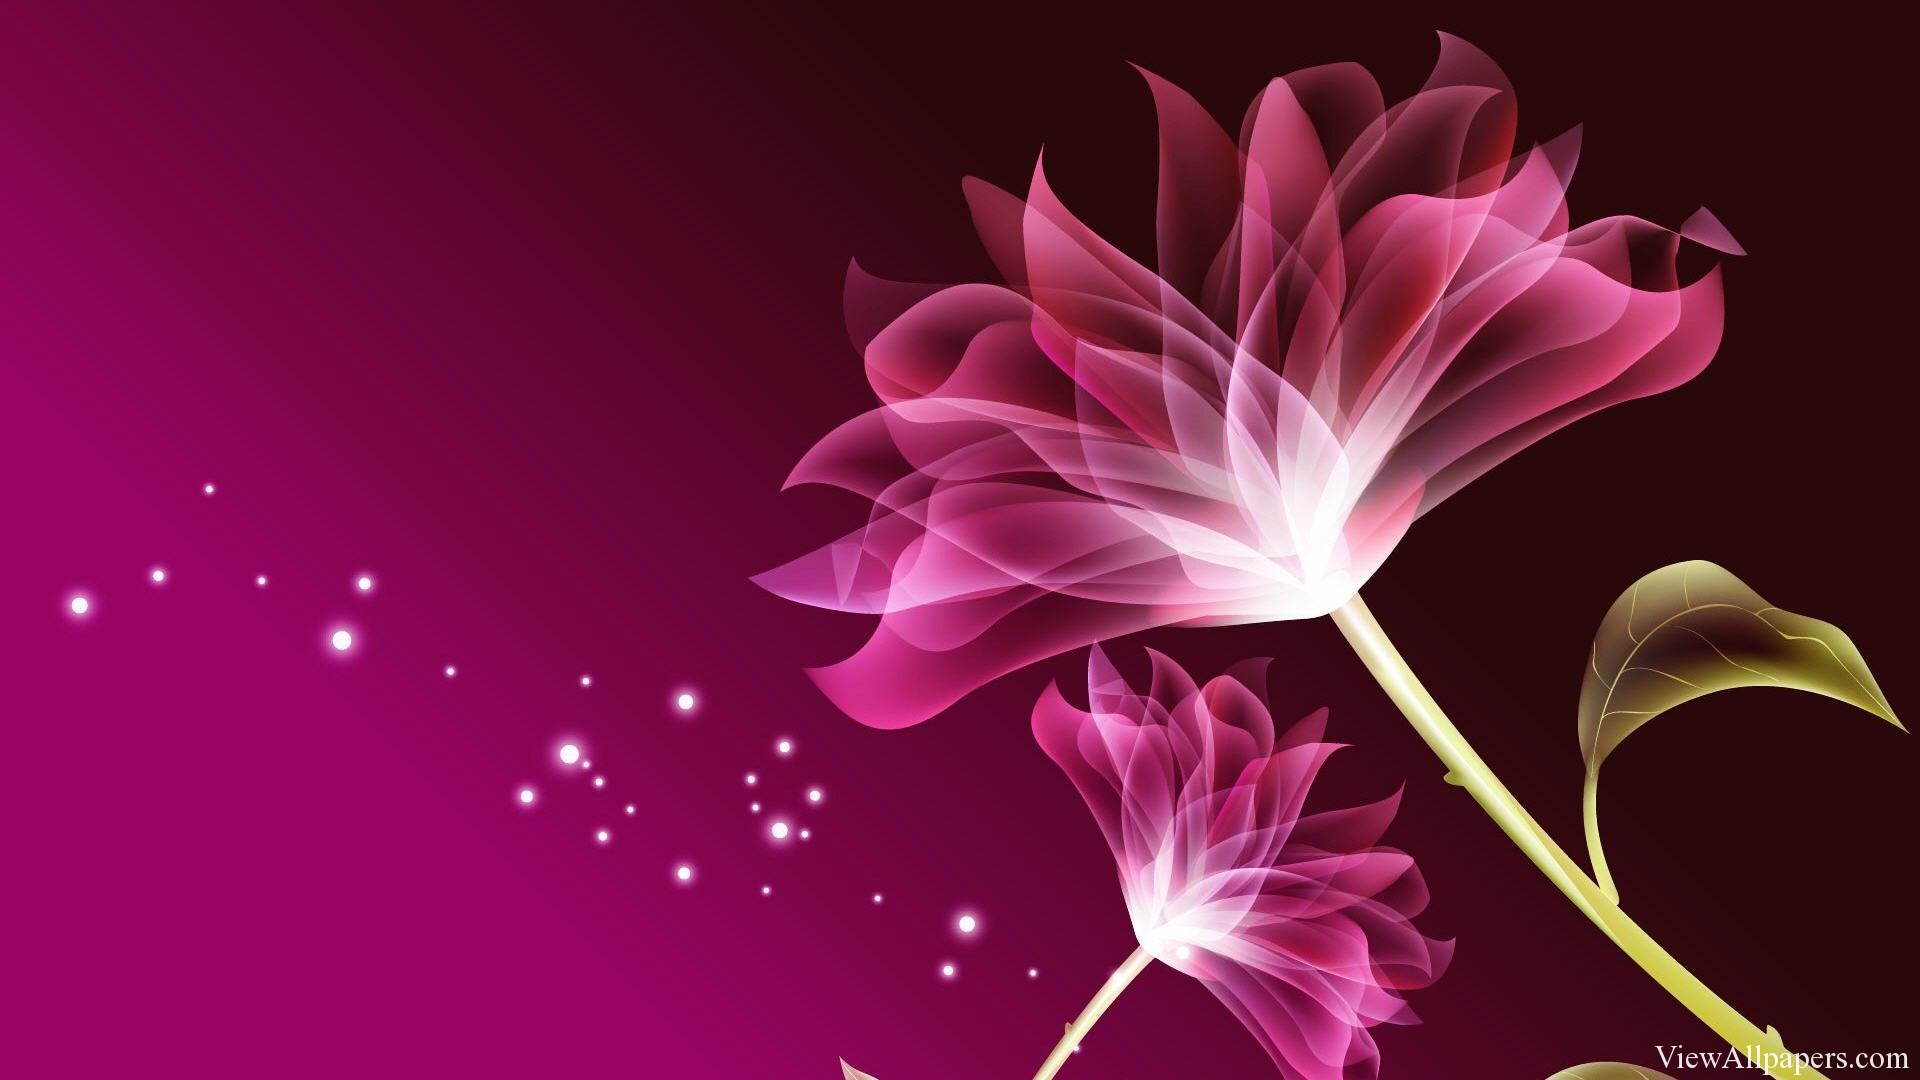 3D Pink Beautiful Flower Wallpaper by viewallpaperscom 1920x1080